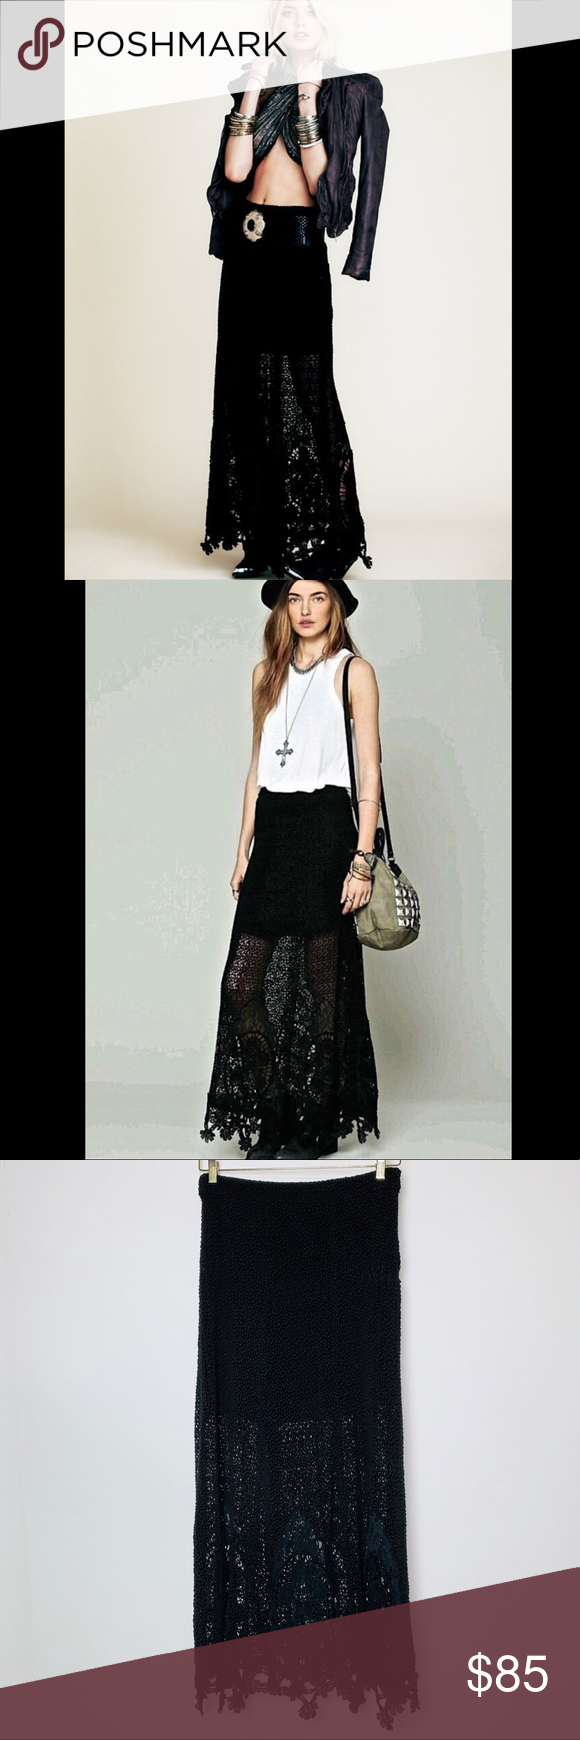 """Free People Black Crochet Mi Amore Maxi Skirt (10) Free People Mi Amore Black asymmetrical crochet hem maxi skirt. Gorgeous semi sheer maxi skirt, fully lined to 19"""". Crochet overlayed maxi skirt with intricate crochet detailing around bottom hem. Bottom hem is scalloped floral crochet. Zipper closure on side of hip.  Excellent condition without flaws.   Size 10 16"""" across waist 18"""" across hips 19"""" slip length 43"""" skirt length  E Free People Skirts Maxi"""